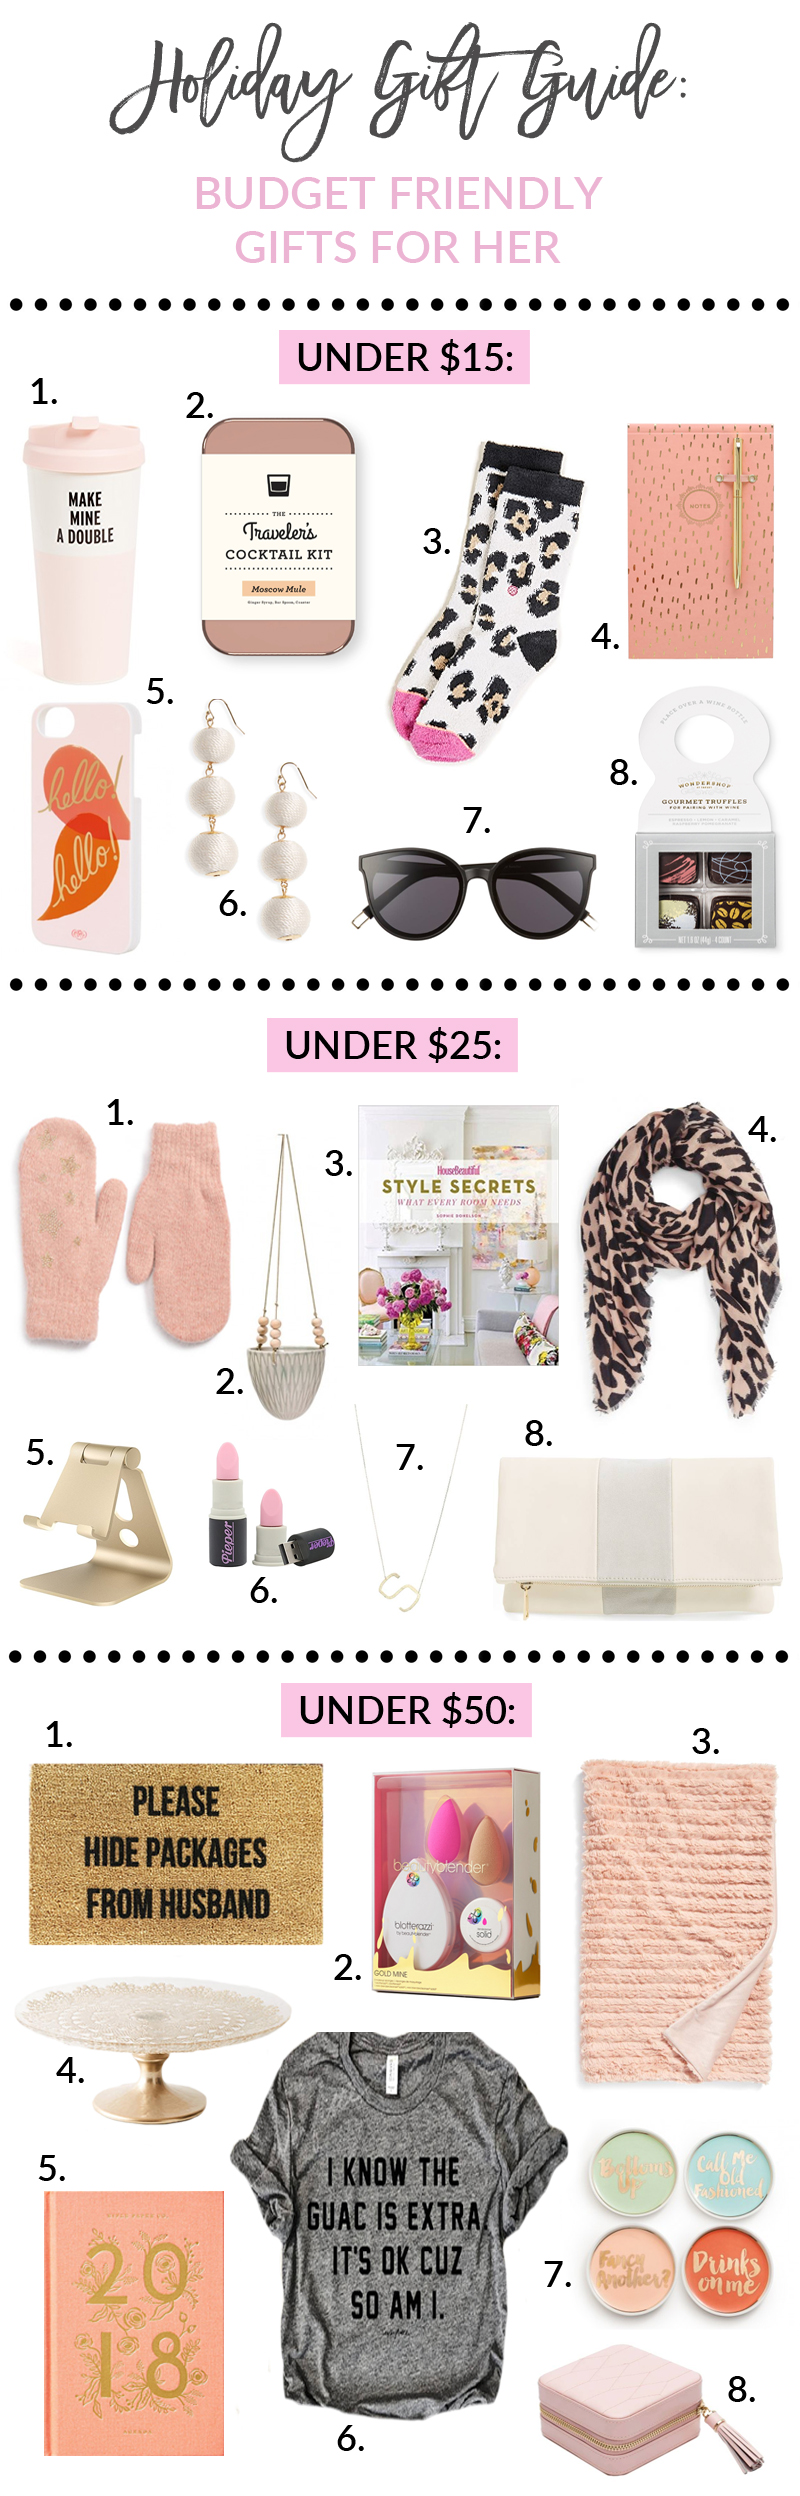 Holiday Gift Guide: Budget Friendly Gifts For Her by Utah style blogger Sandy A La Mode